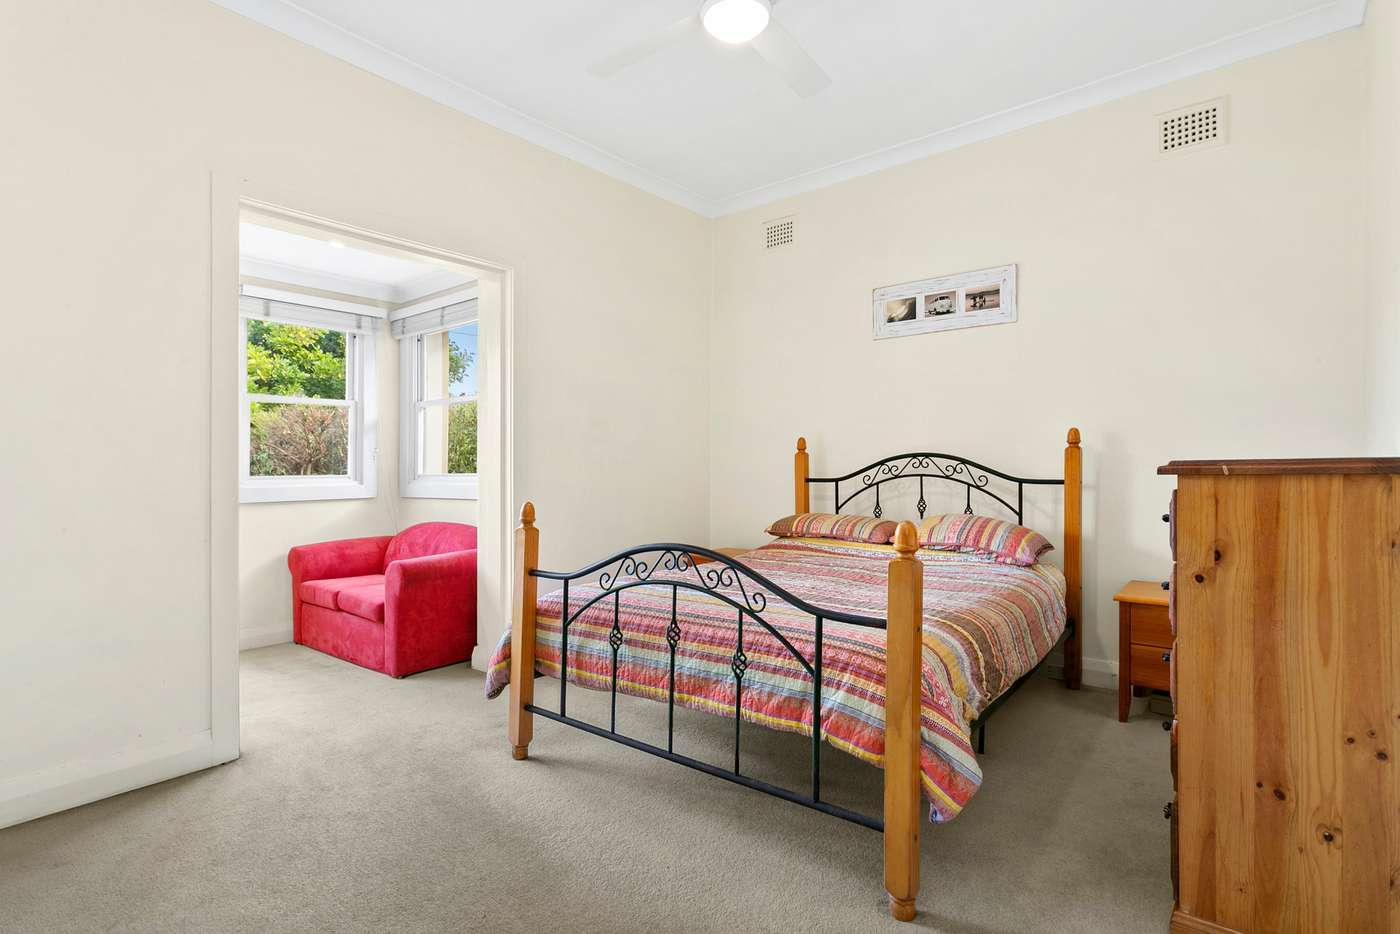 Sixth view of Homely house listing, 78 Paine Street, Maroubra NSW 2035